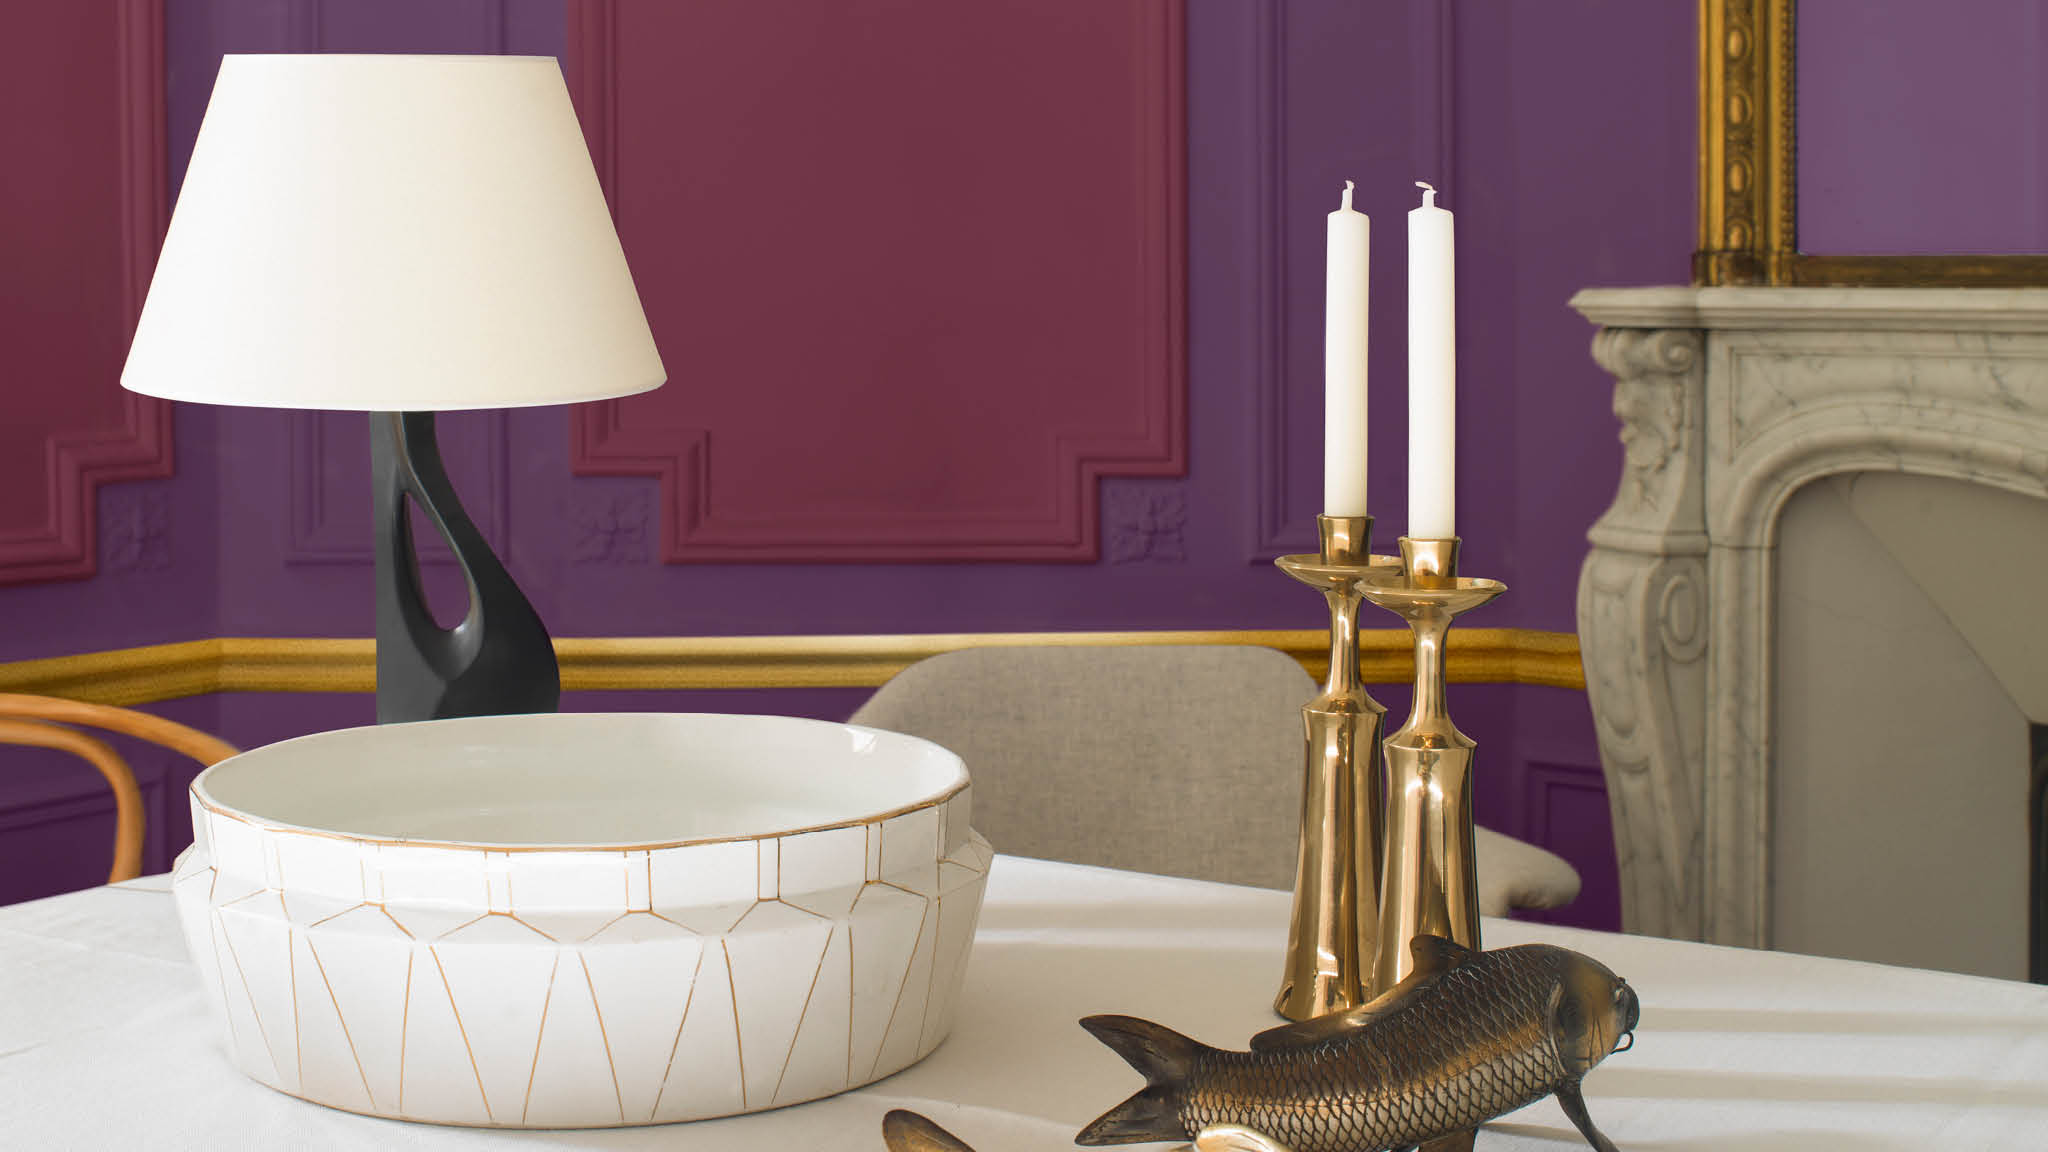 Blend sumptuous shades of purple and deep red to create a dining space brimming with grandeur and opulence. To create a striking focal point, use a rich shade of purple for the walls, and layer with mulberry accents.